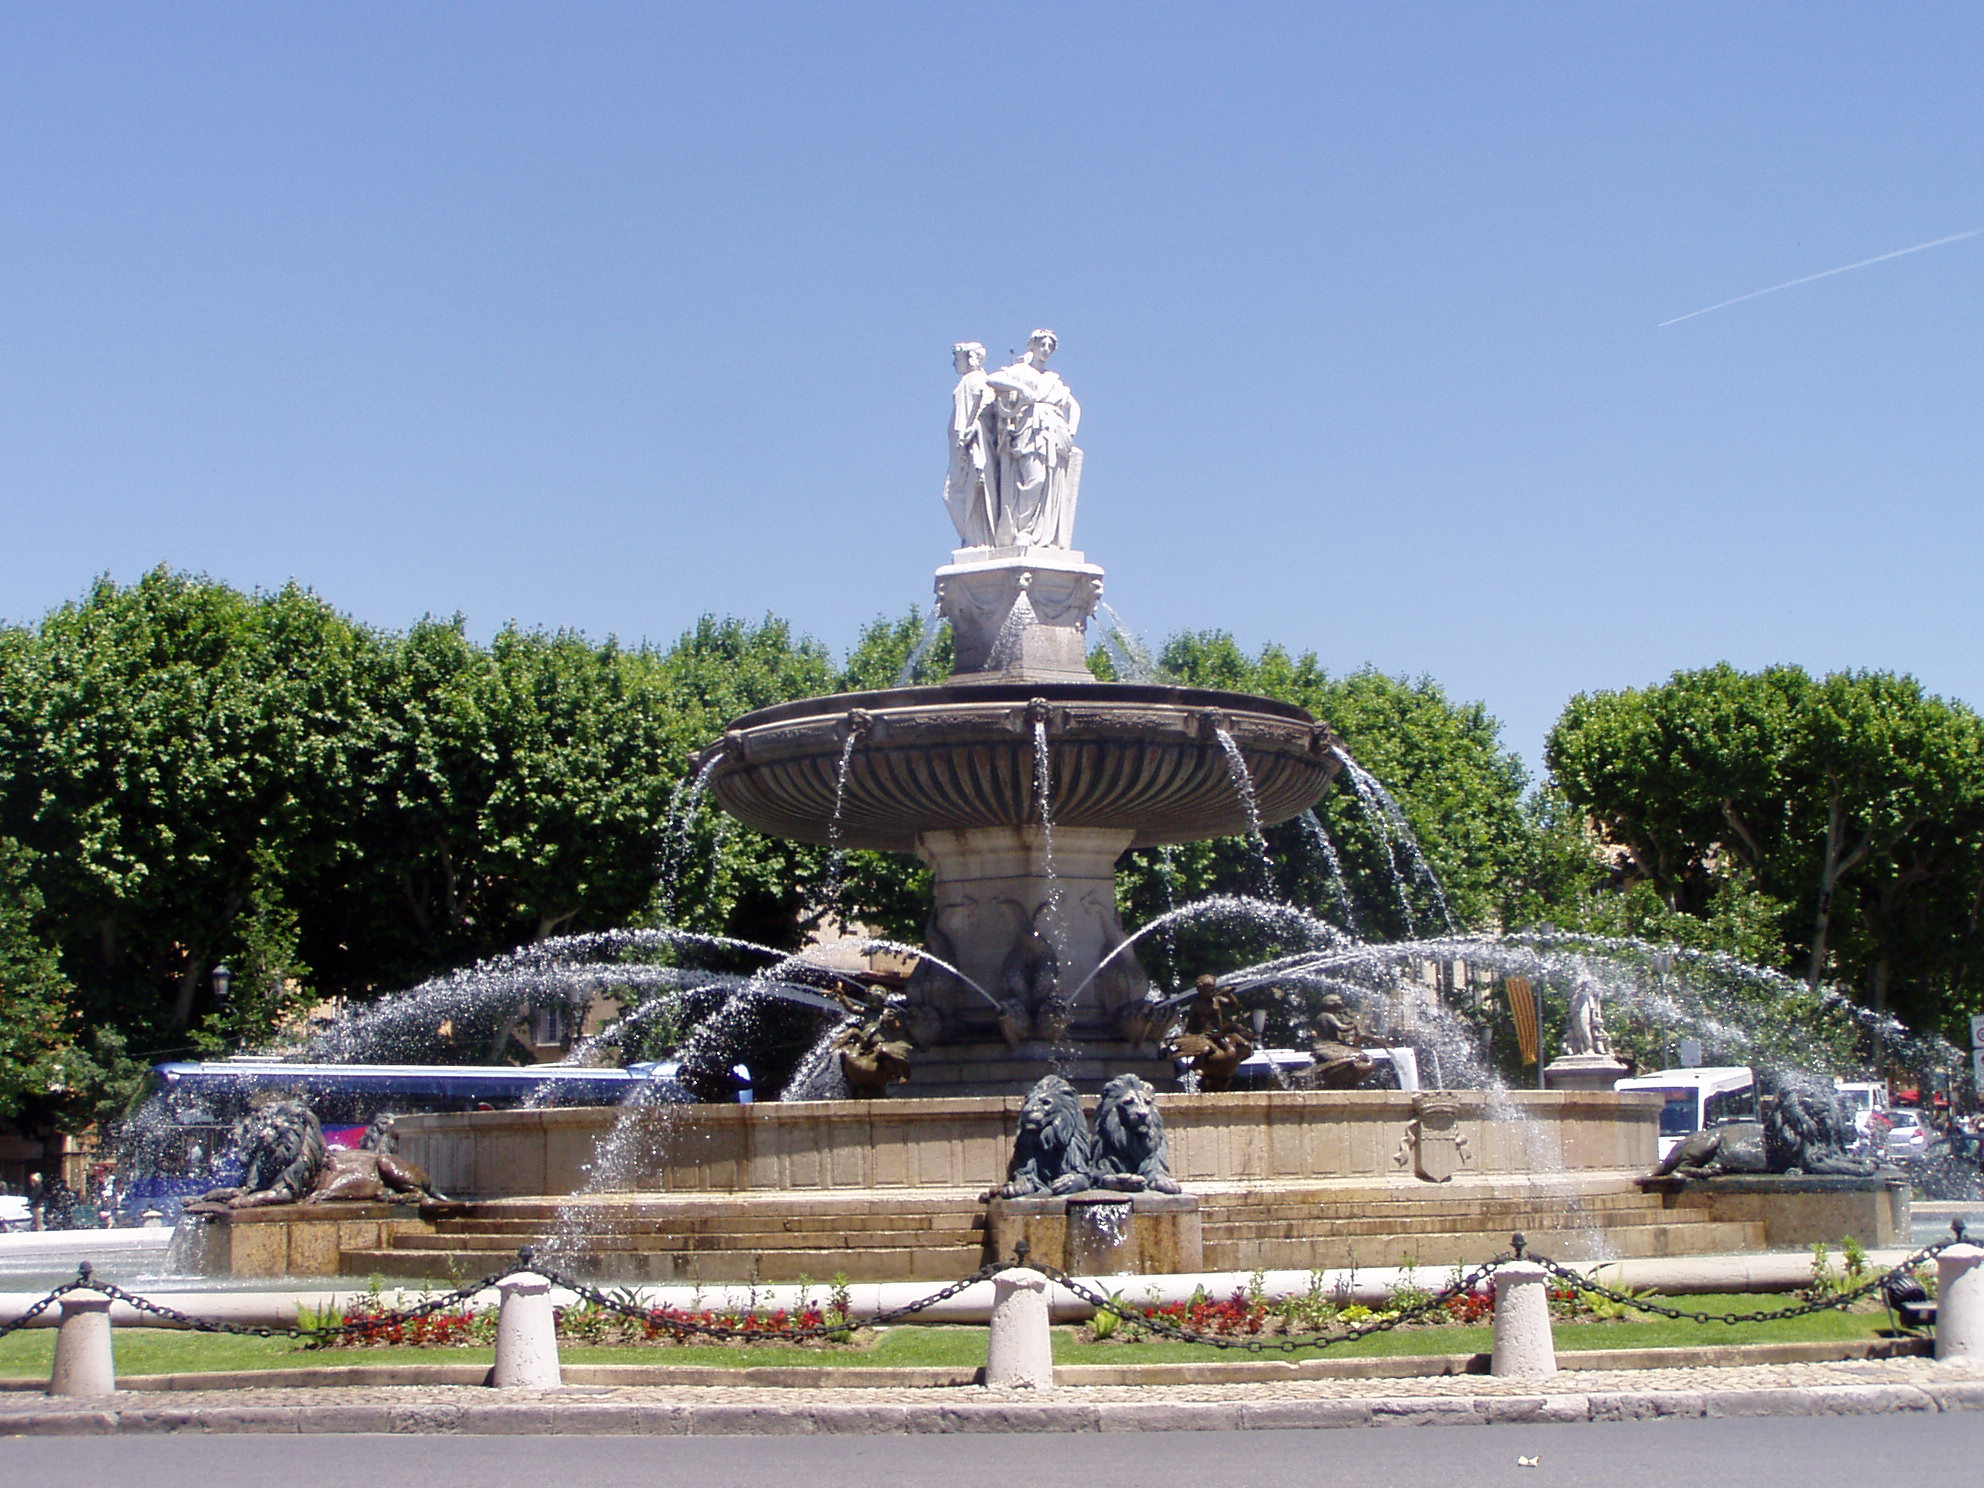 https://upload.wikimedia.org/wikipedia/commons/f/f5/Fontaine_de_la_Rotonde_-_Aix-en-Provence.JPG